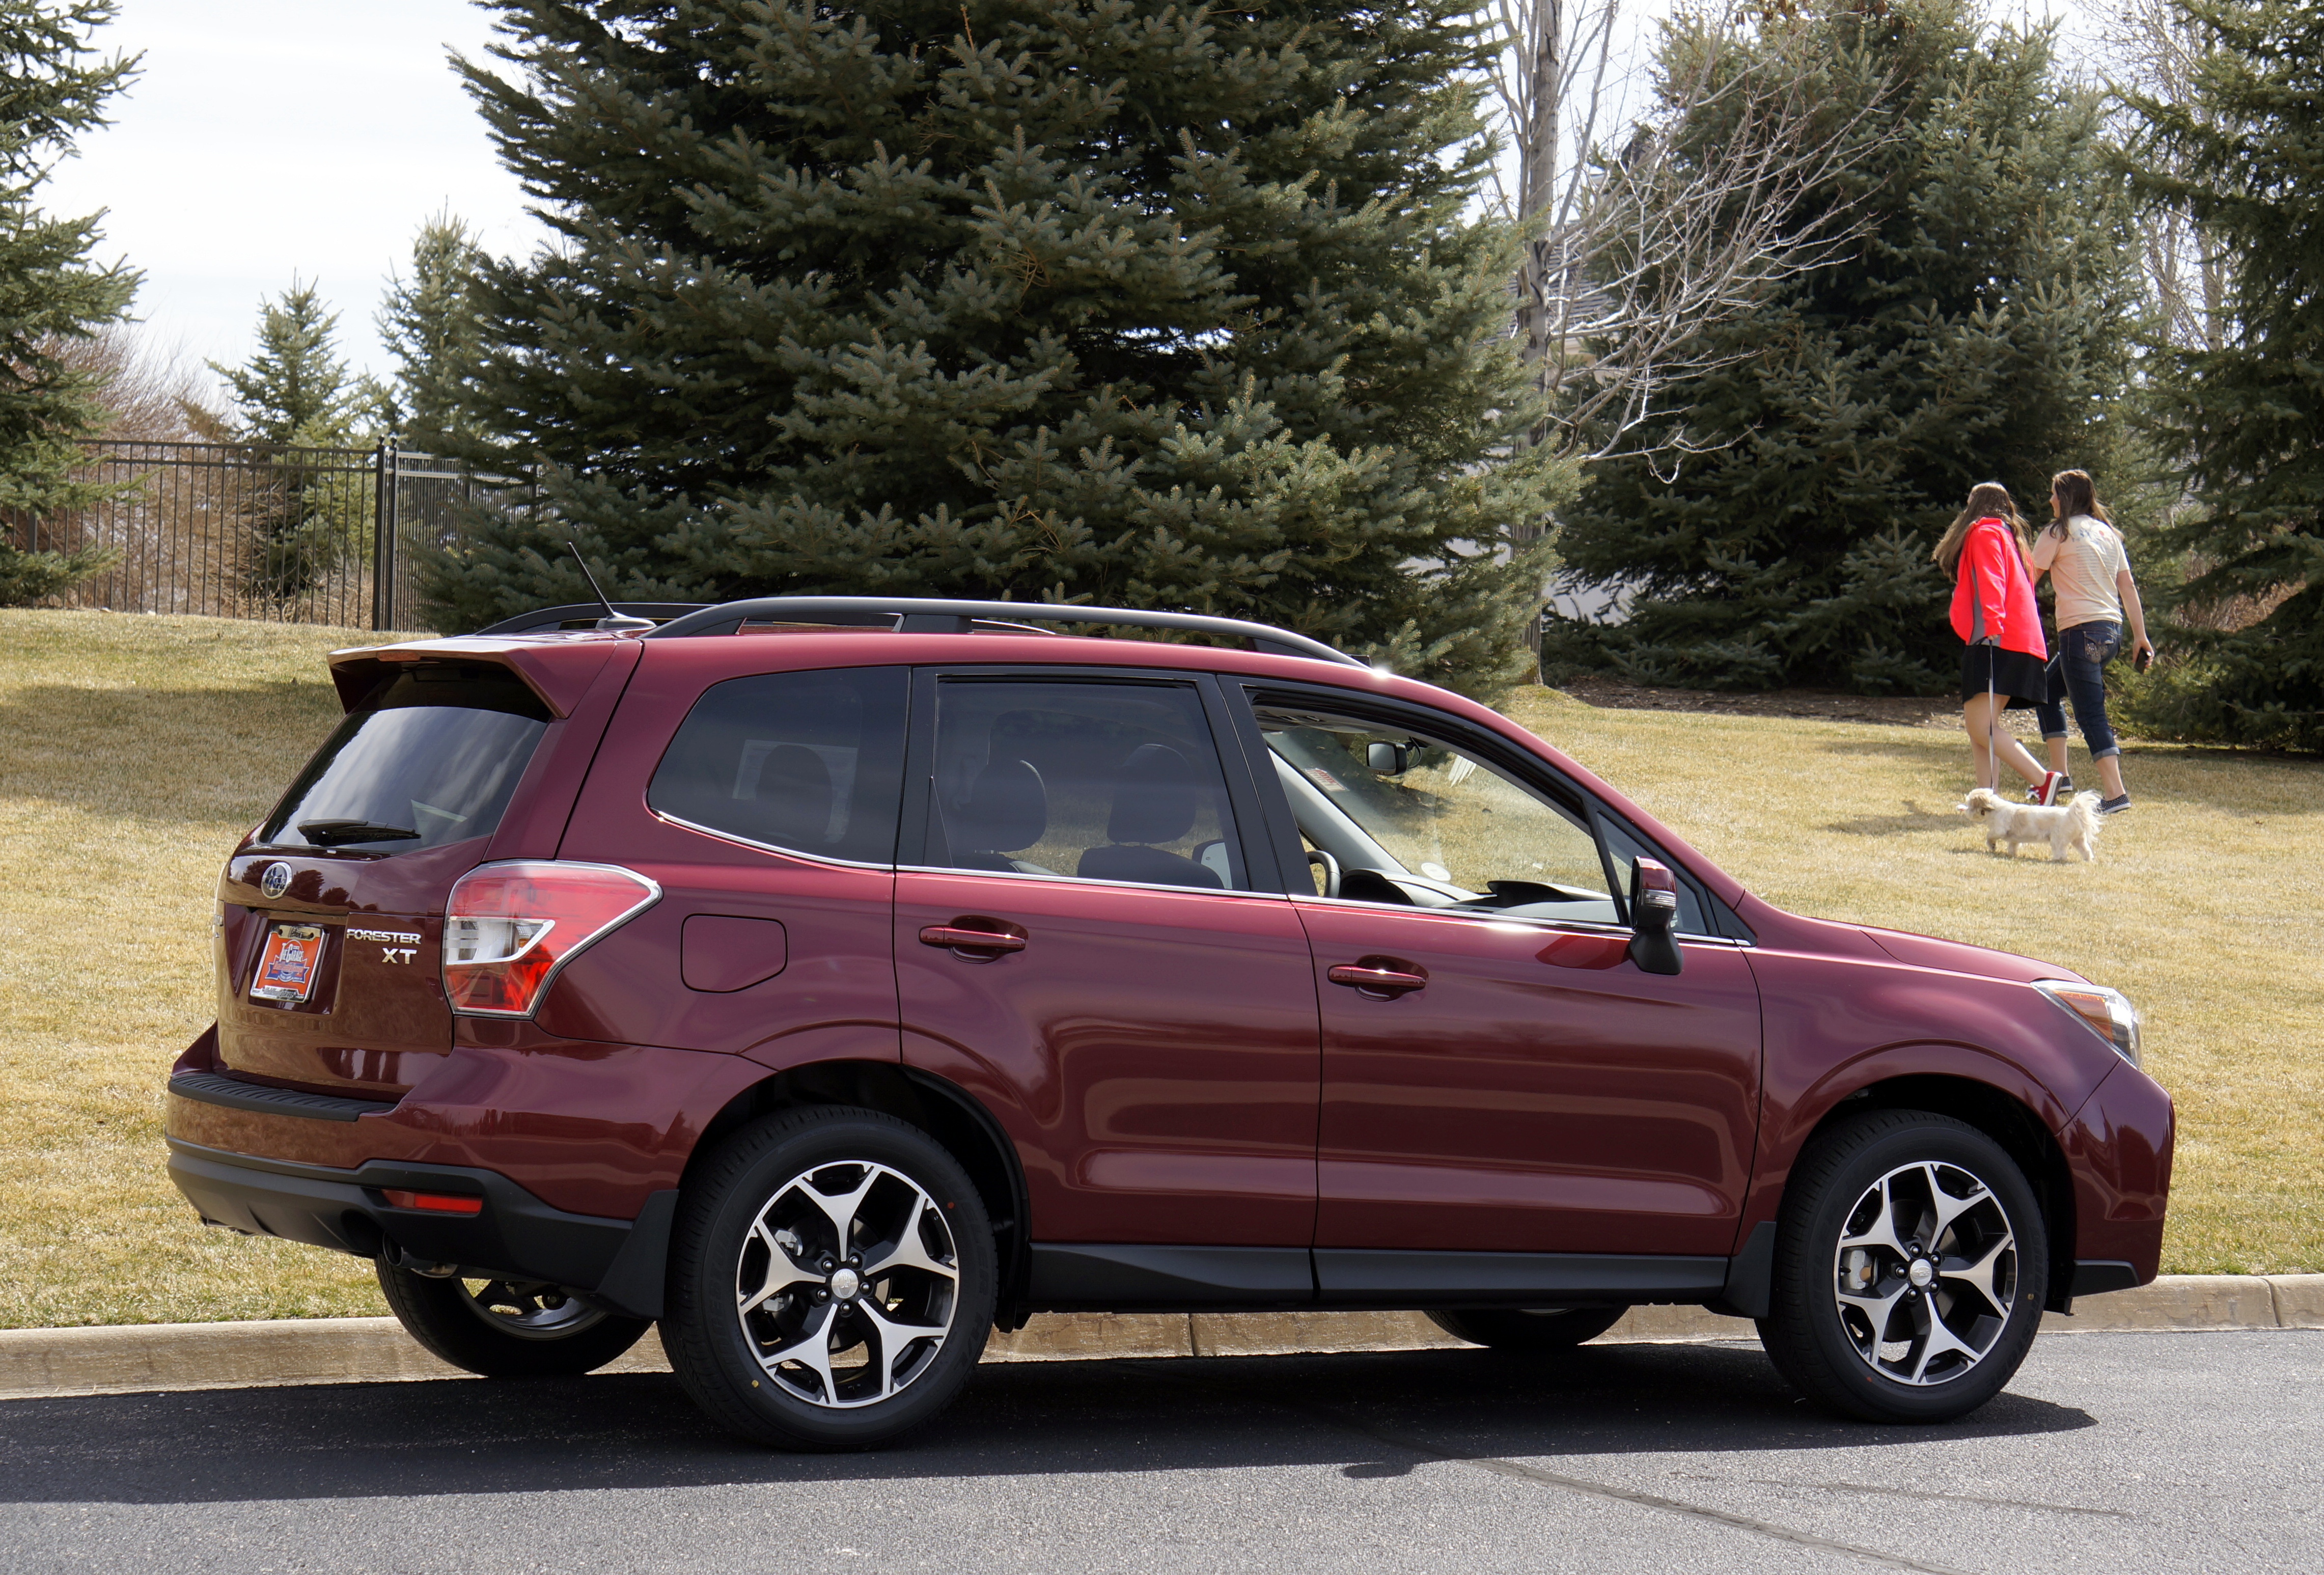 2013 subaru forester xt touring image collections hd cars wallpaper 2014 subaru forester 20 xt turbo awd touring crossover stus forester xt with walkers vanachro image vanachro Choice Image